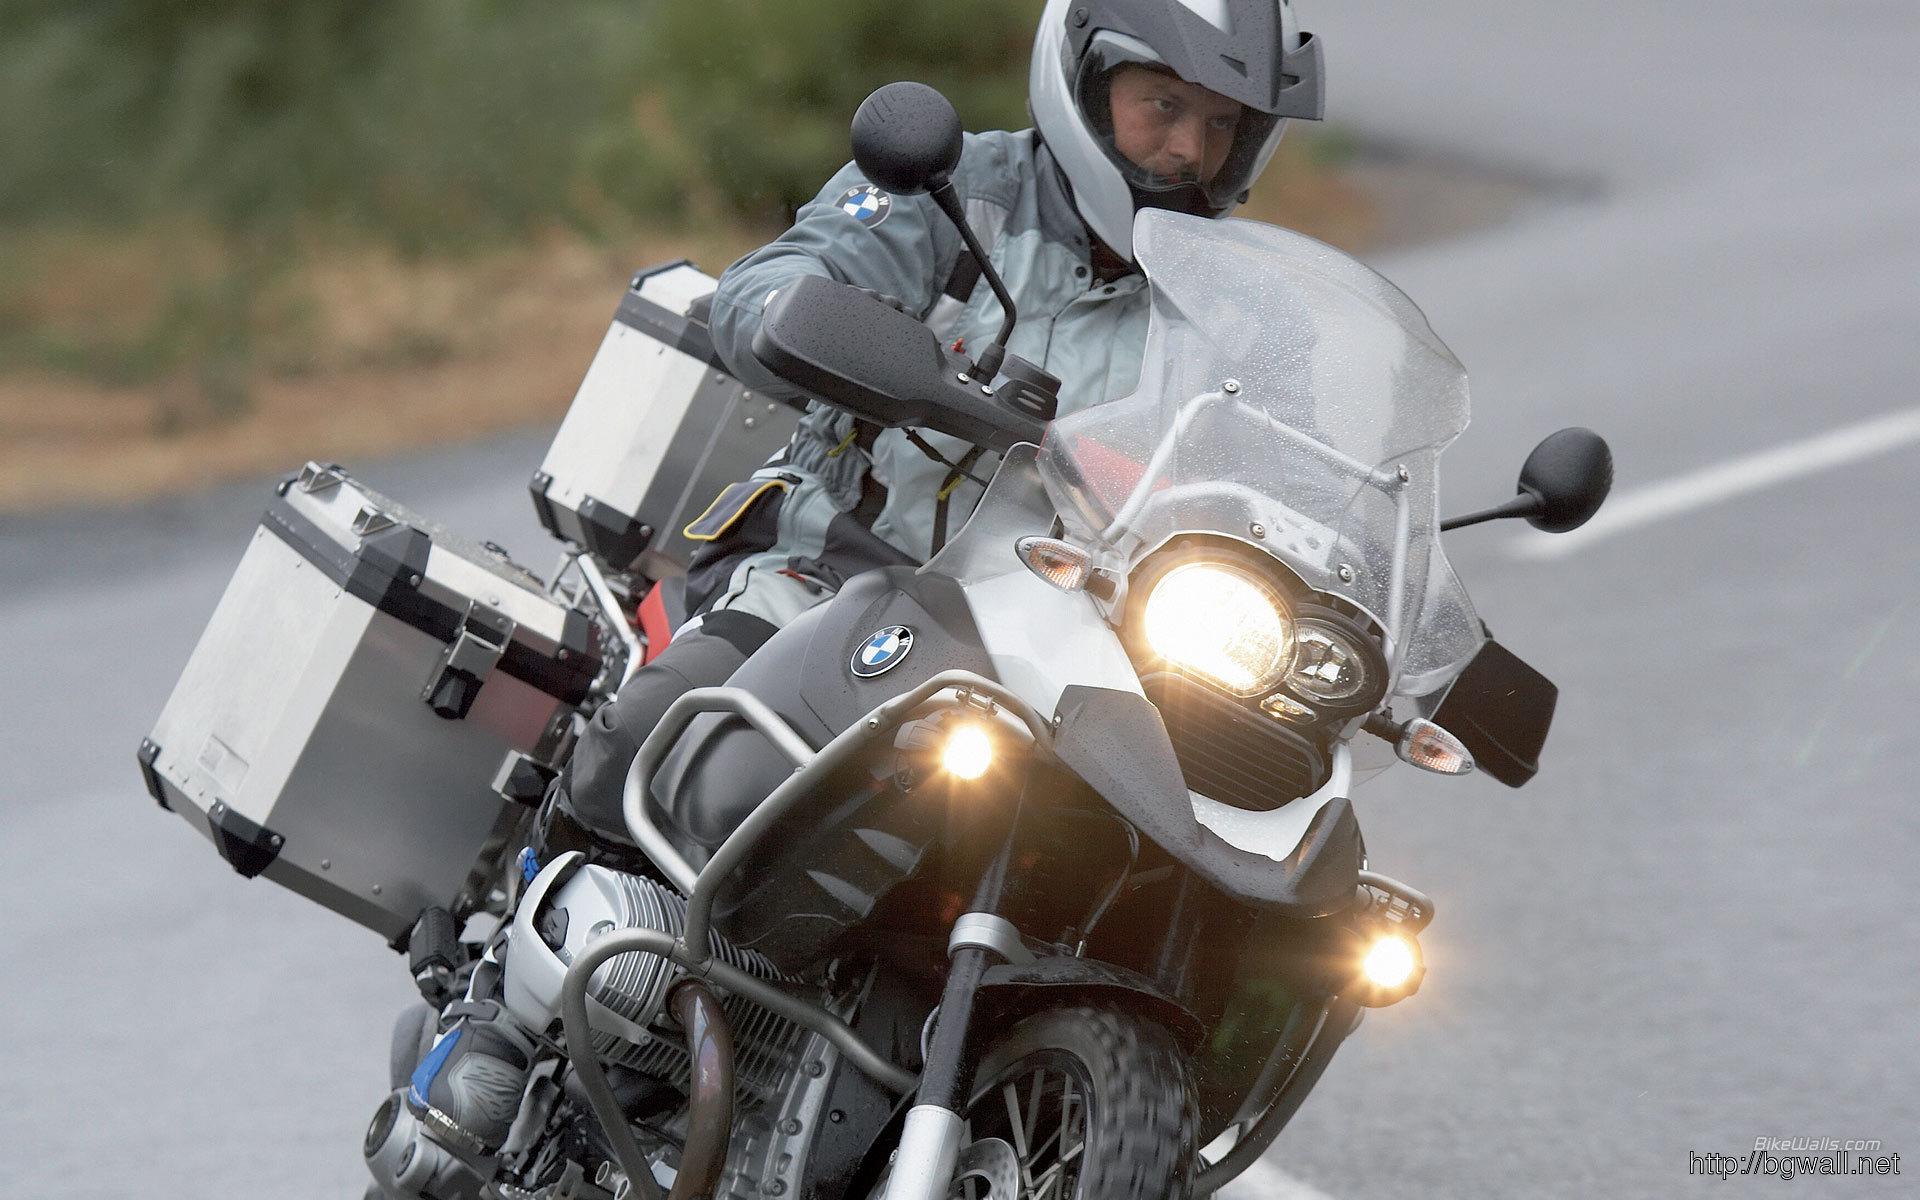 2009 BMW Lo Rider Concept: pics, specs and information ...